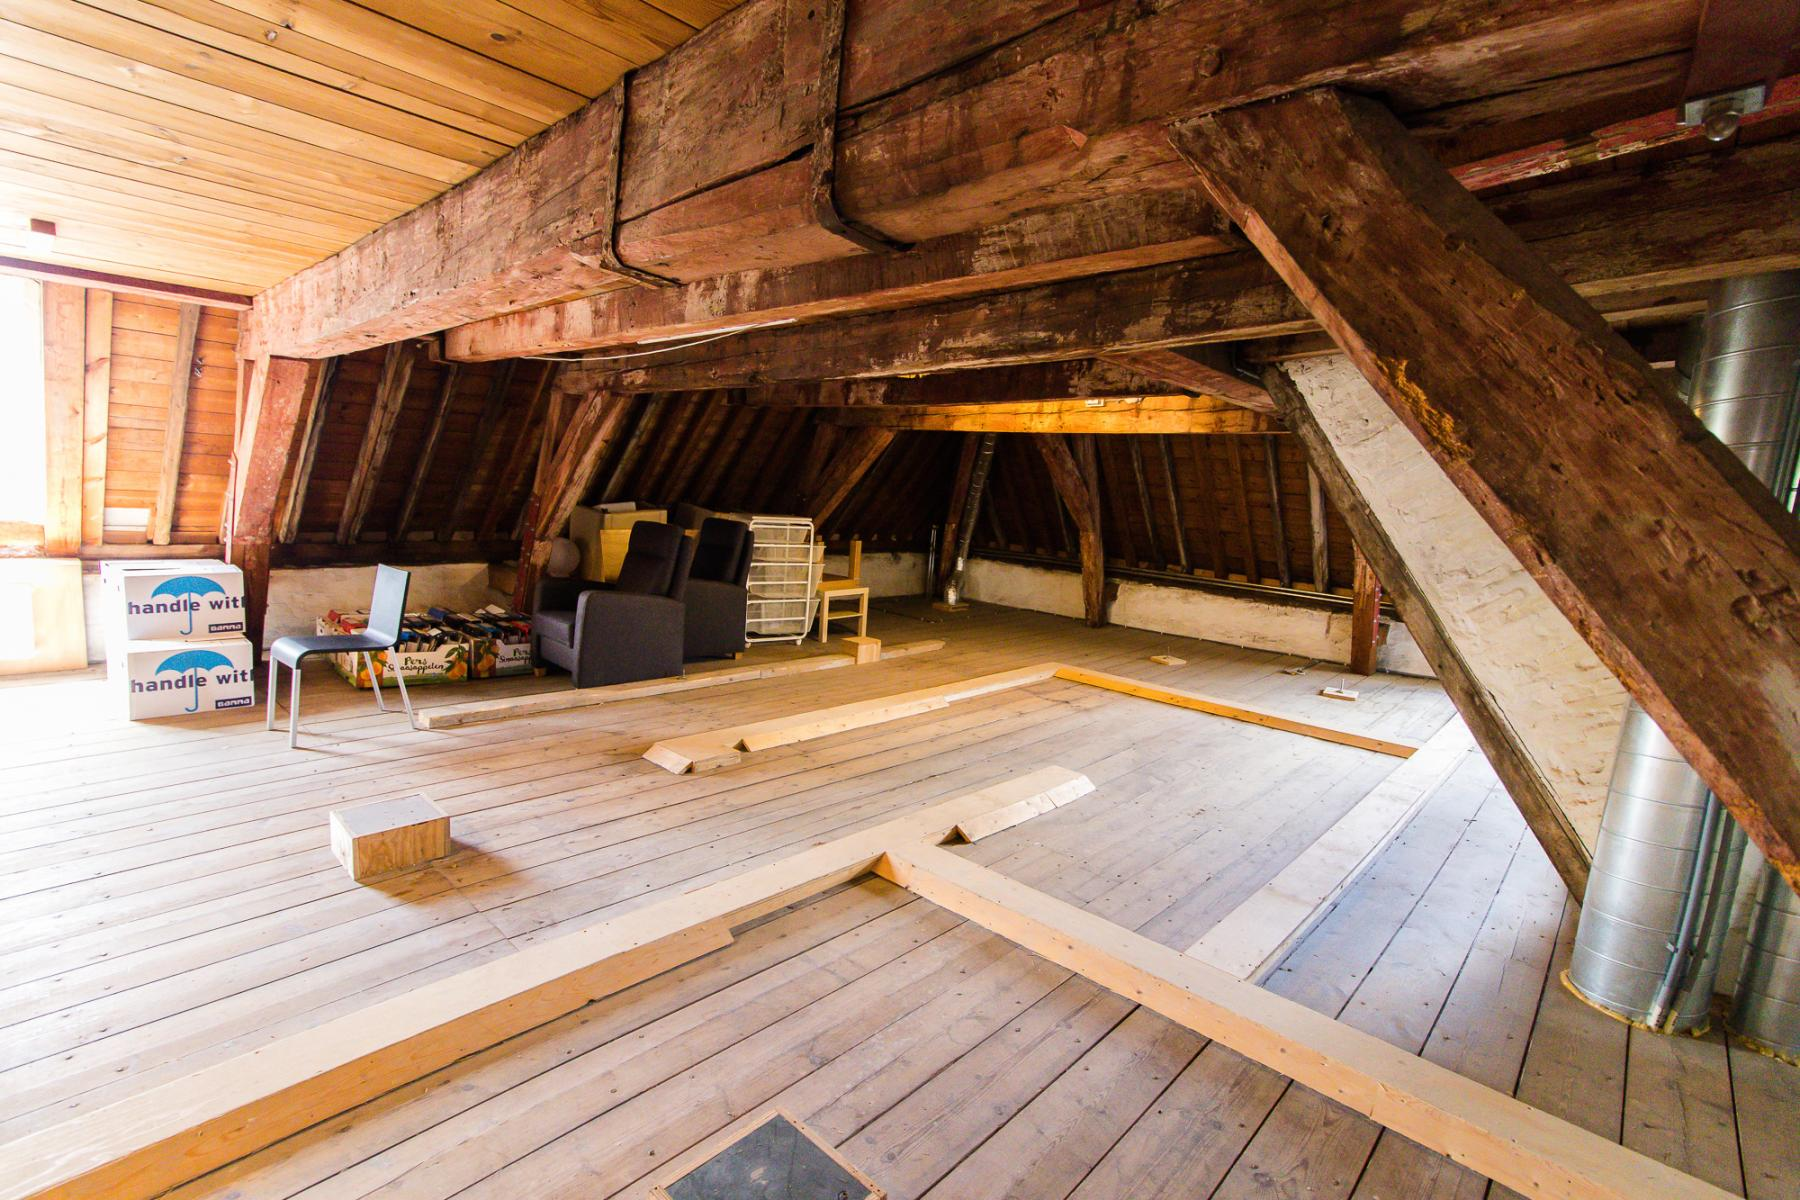 Storage room in the attic